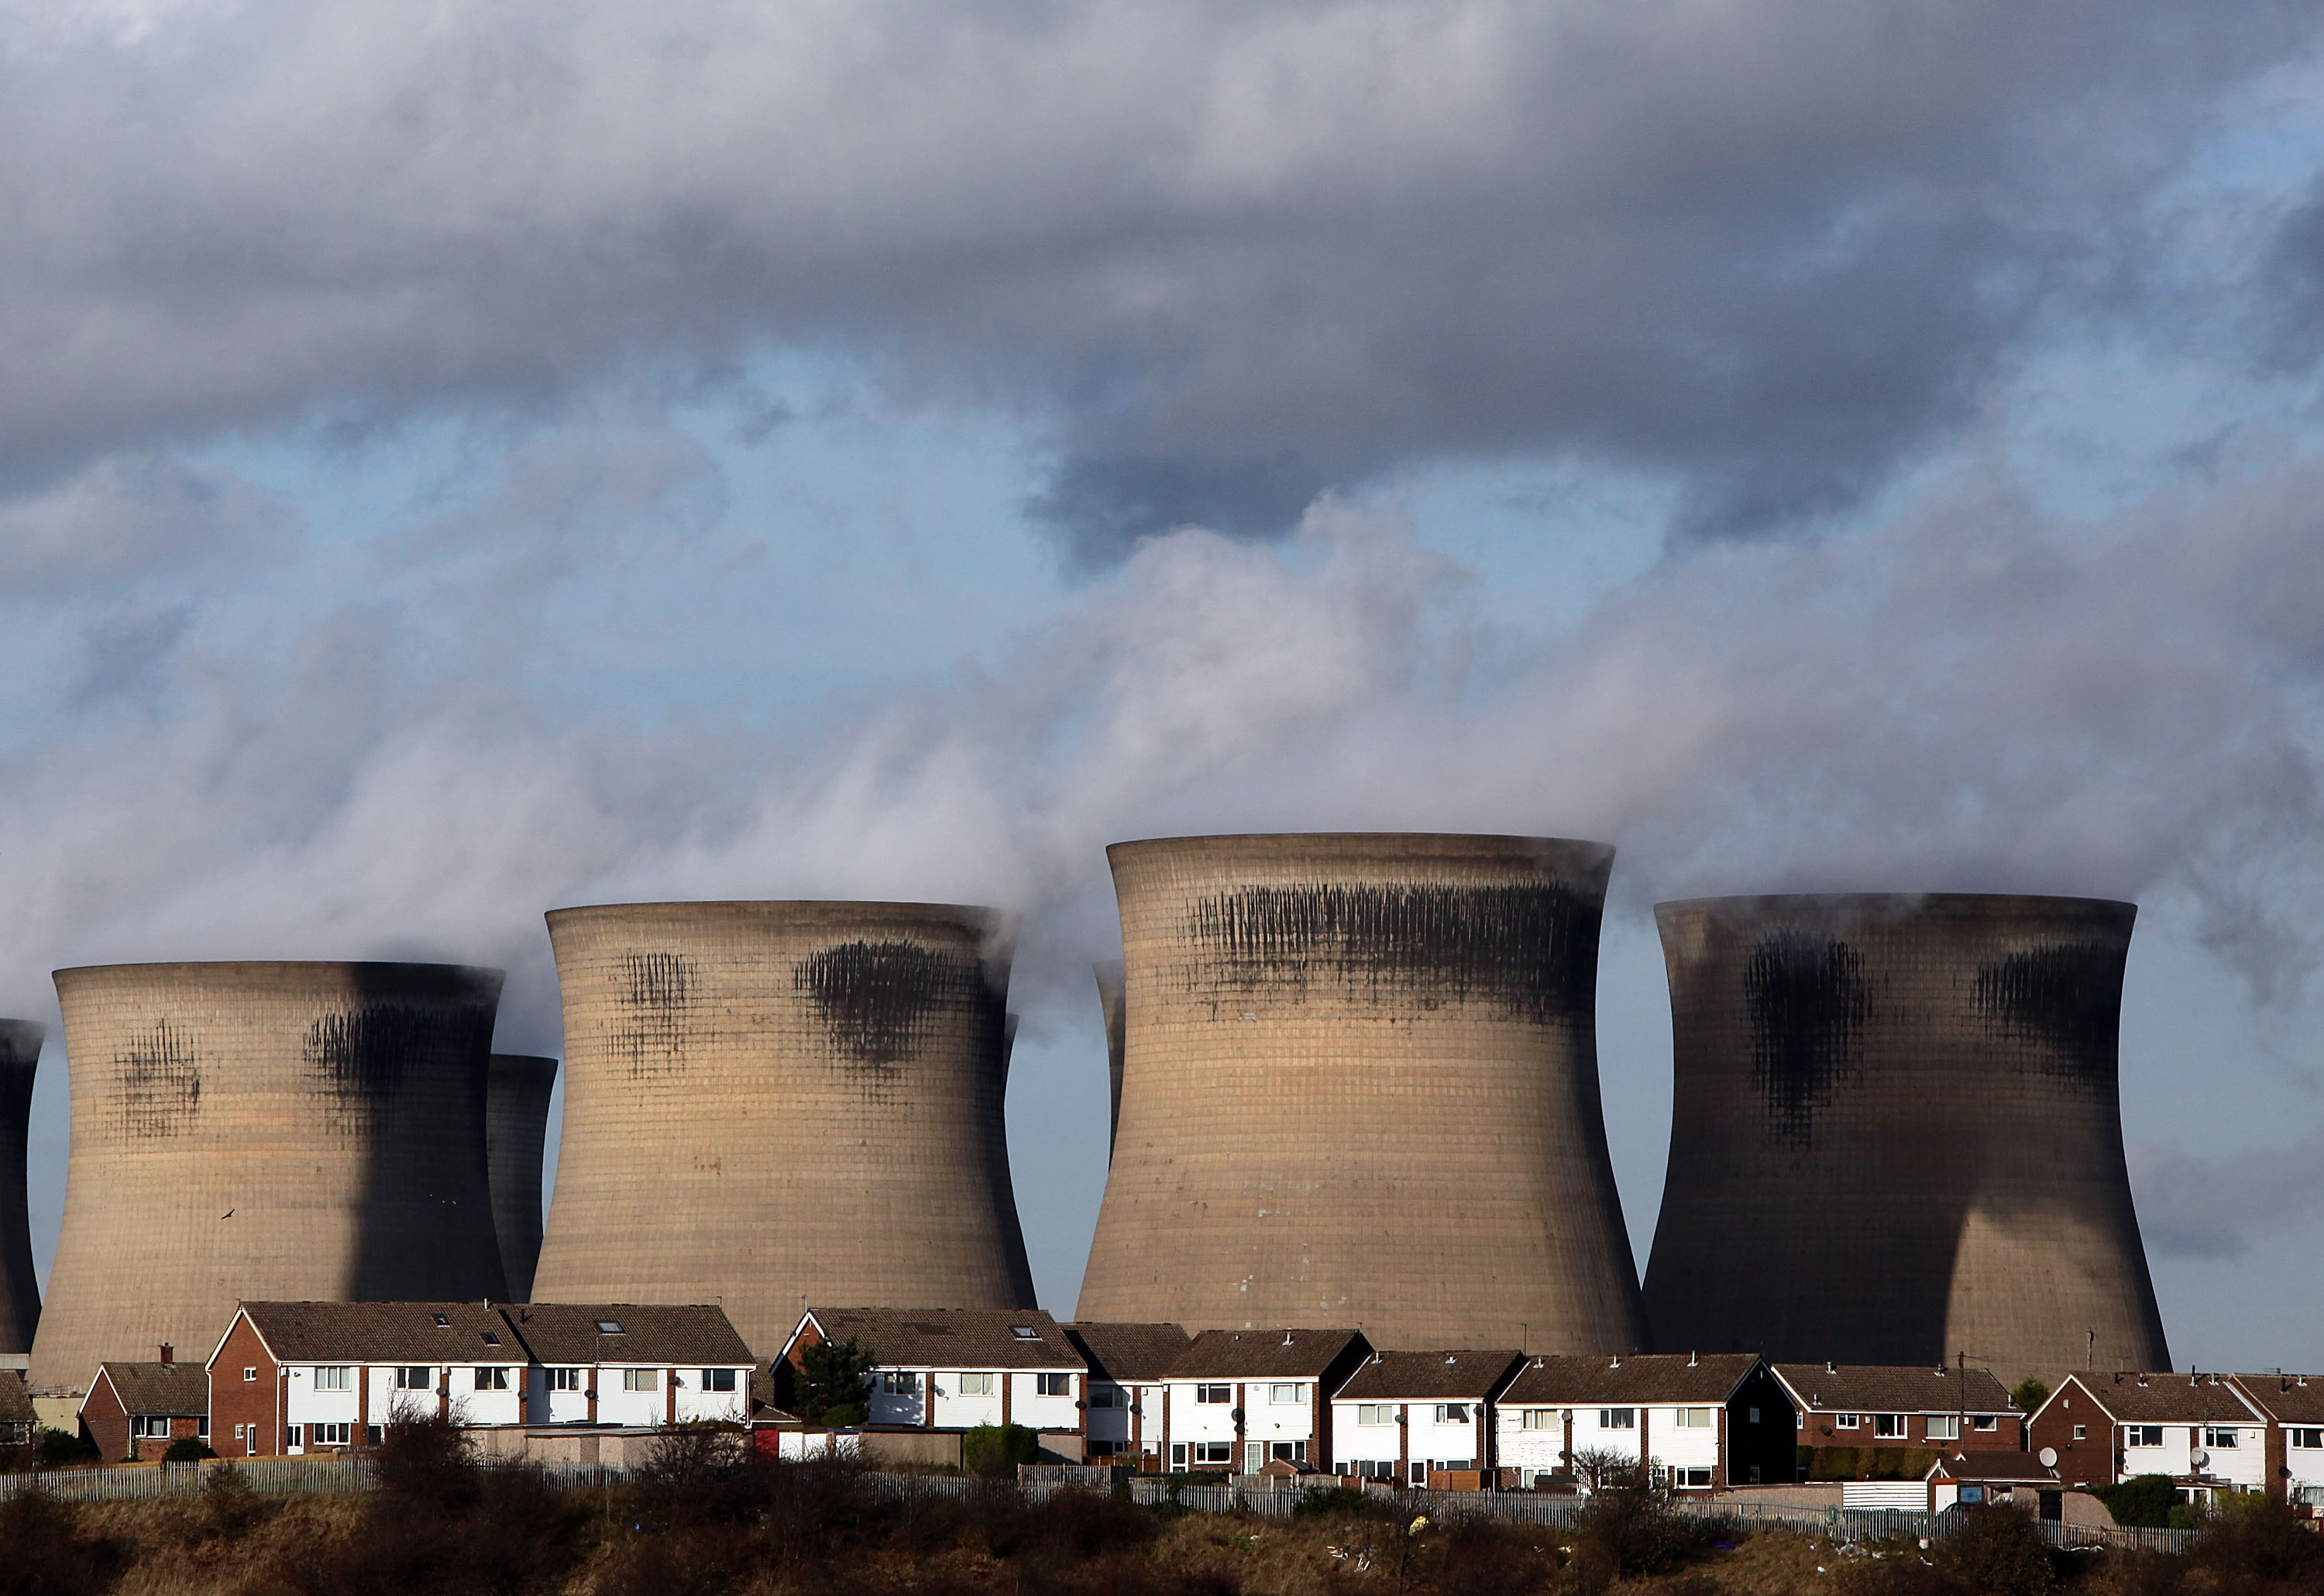 The coal fueled Ferrybridge power station as it generates electricity on November 17, 2009 in Ferrybridge, United Kingdom.